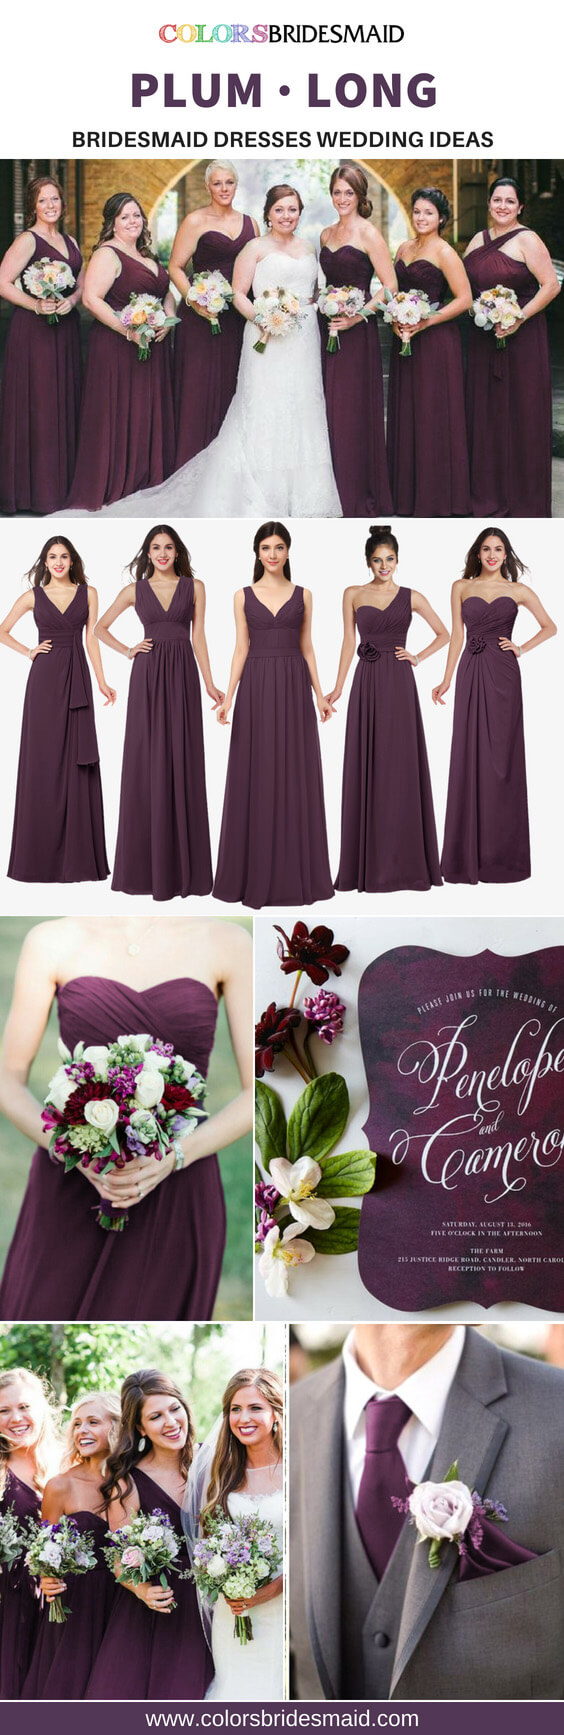 3938206bfb259 Great 5 Plum Long Bridesmaid Dresses For A Fall Wedding ...